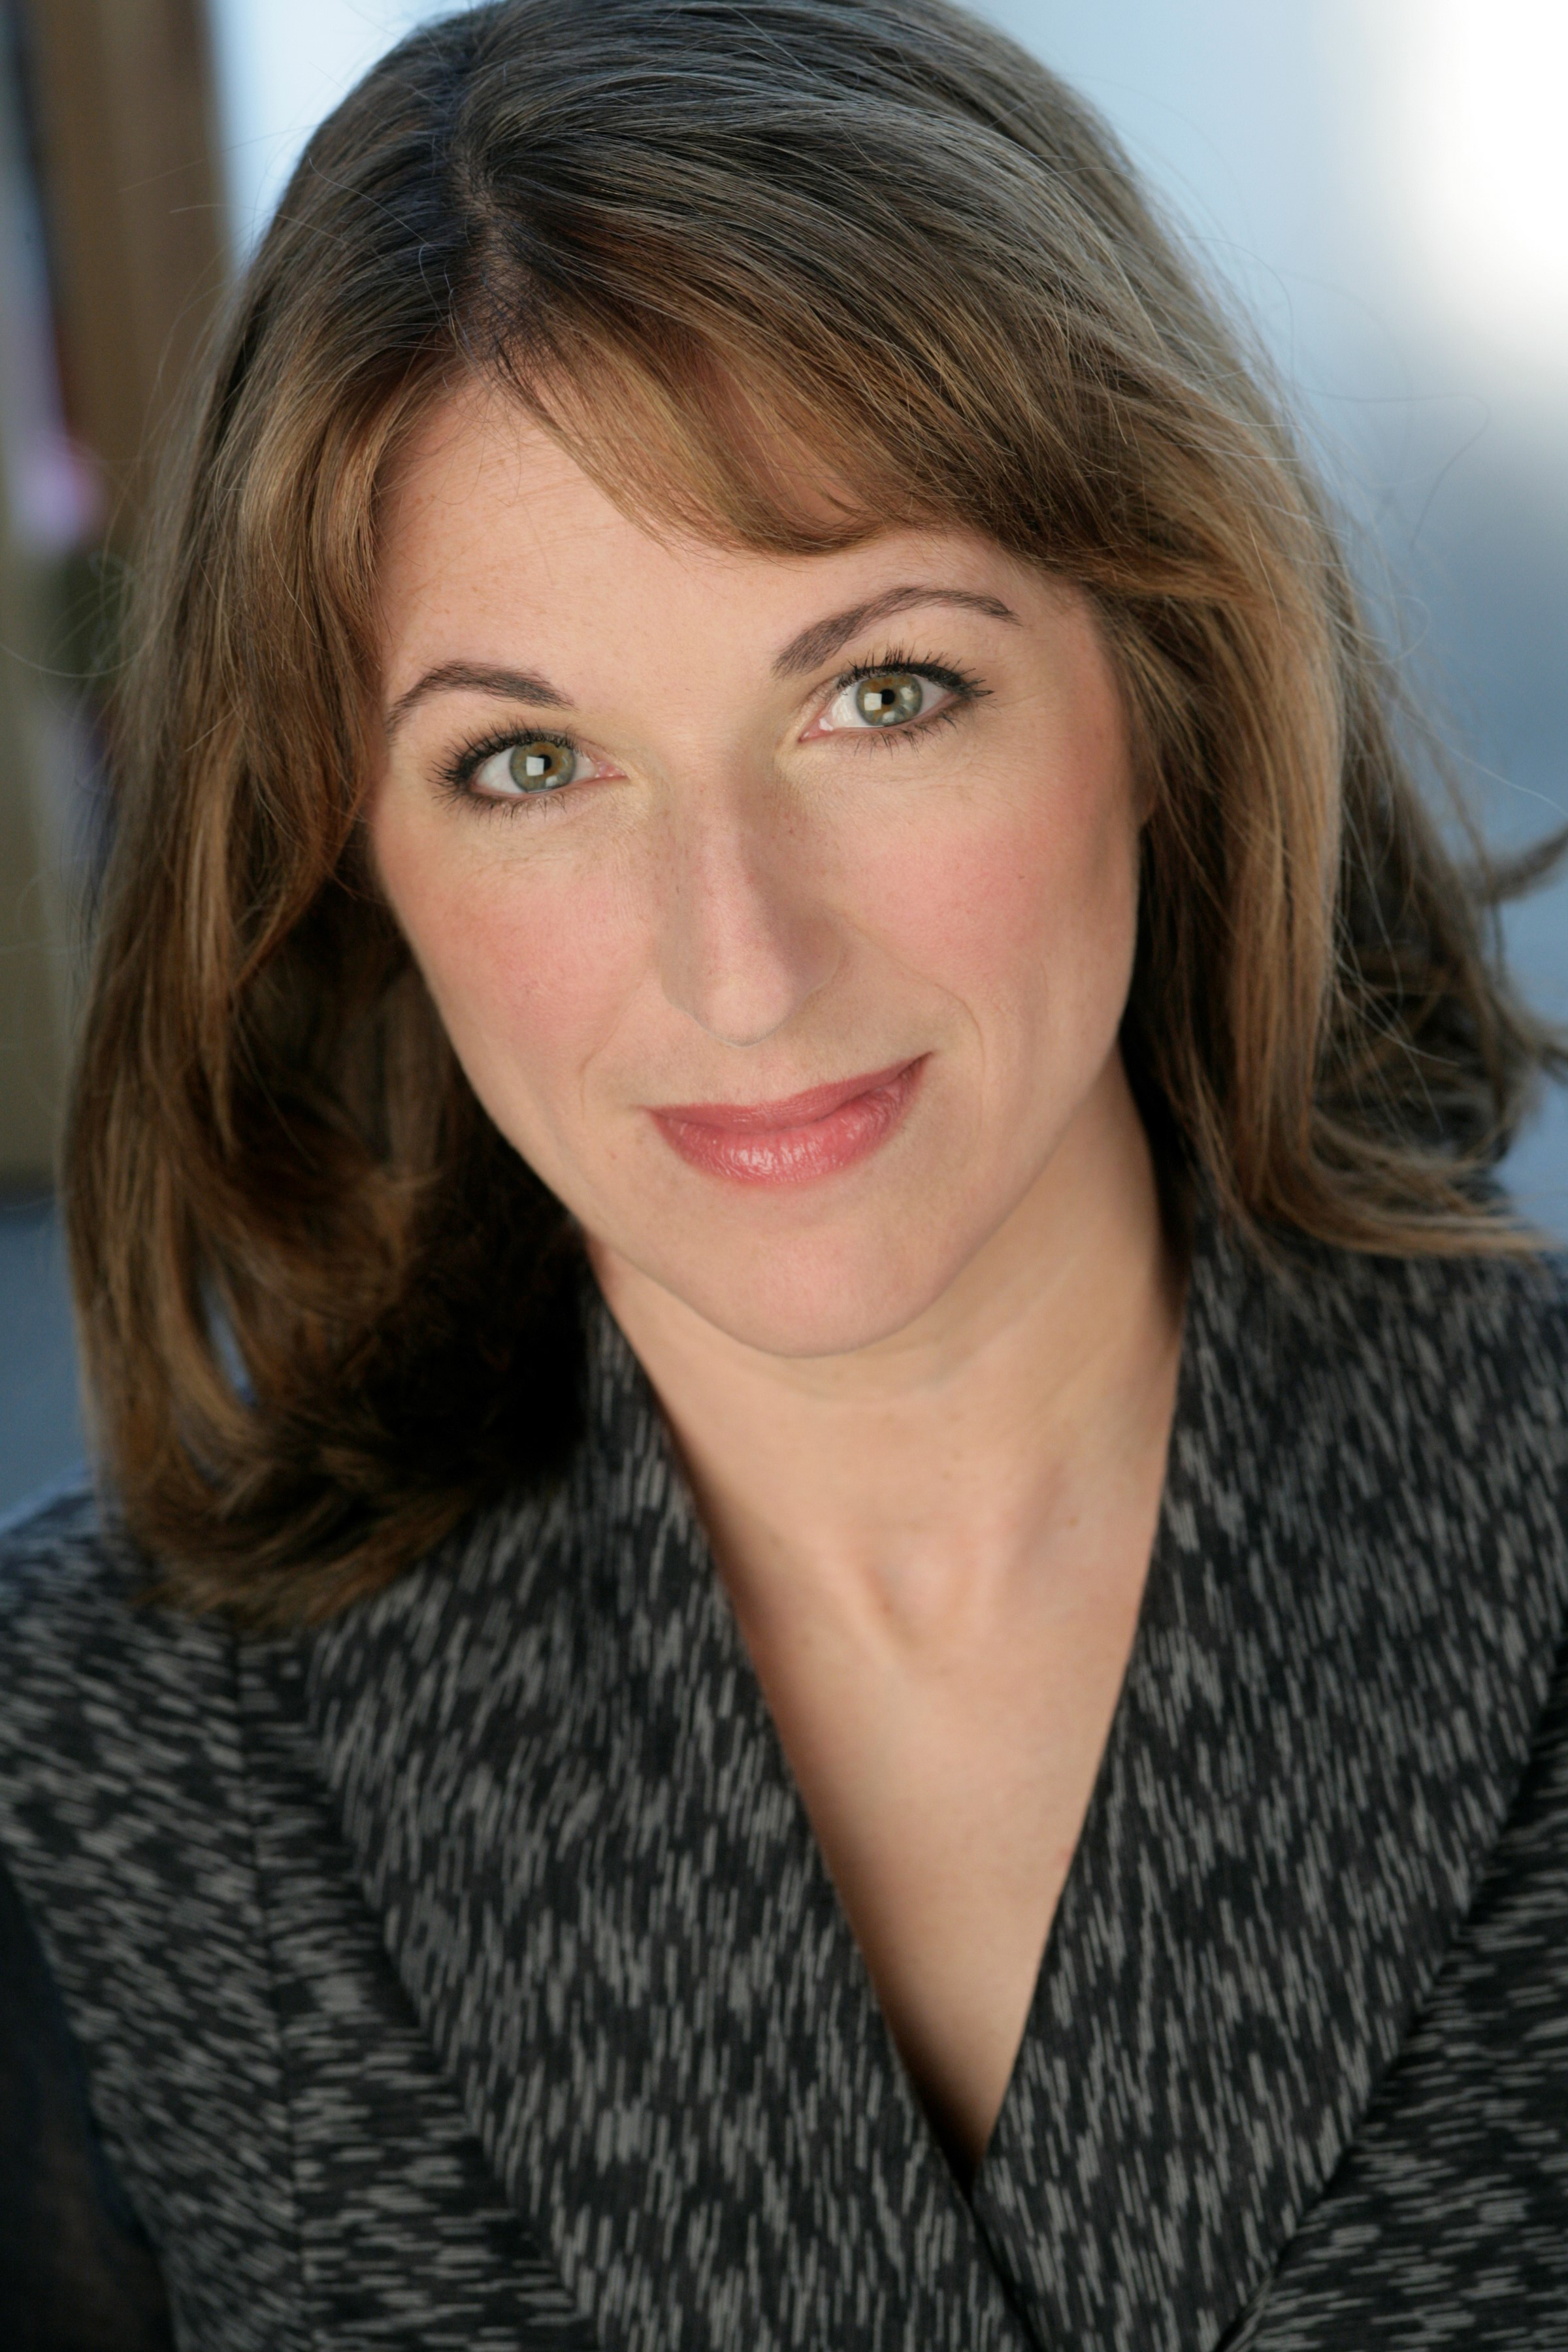 Gift of Failure' Author Jessica Lahey to Appear at Holy Angels